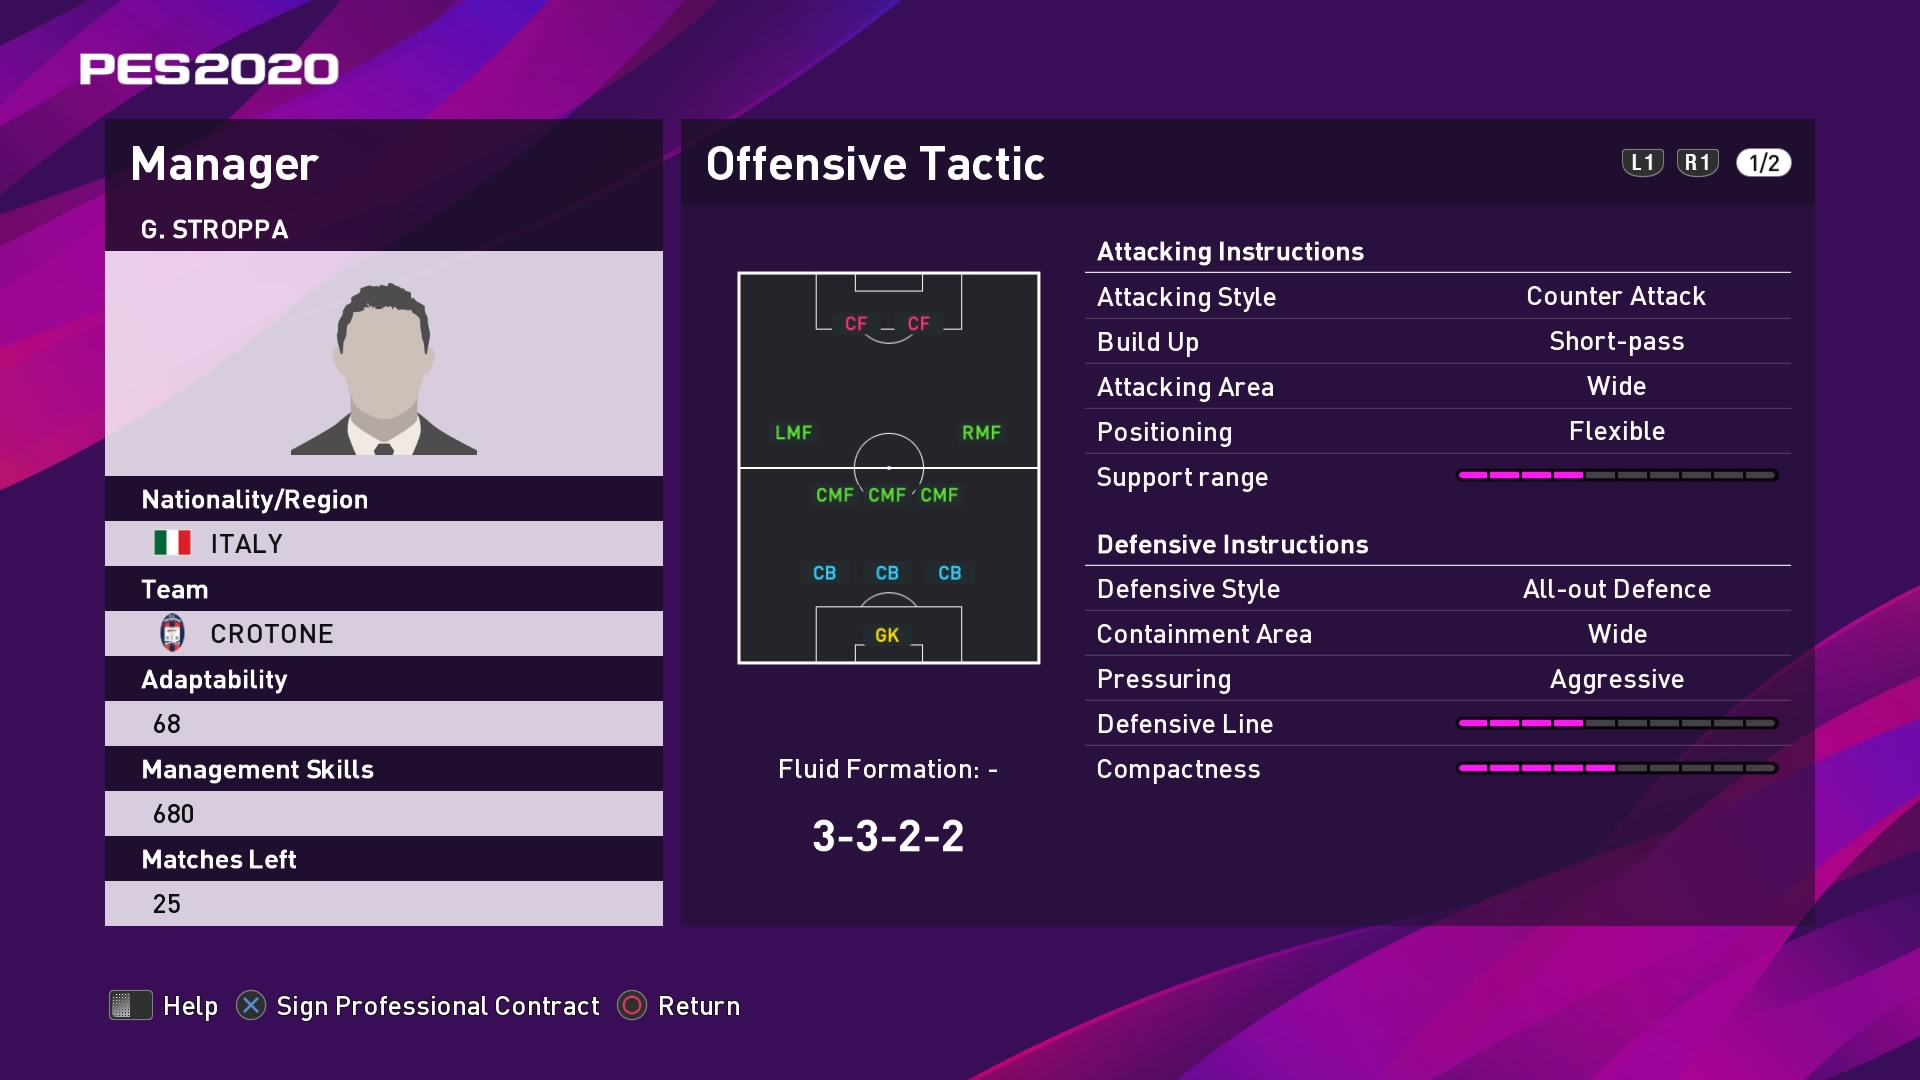 G. Stroppa (Giovanni Stroppa) Offensive Tactic in PES 2020 myClub